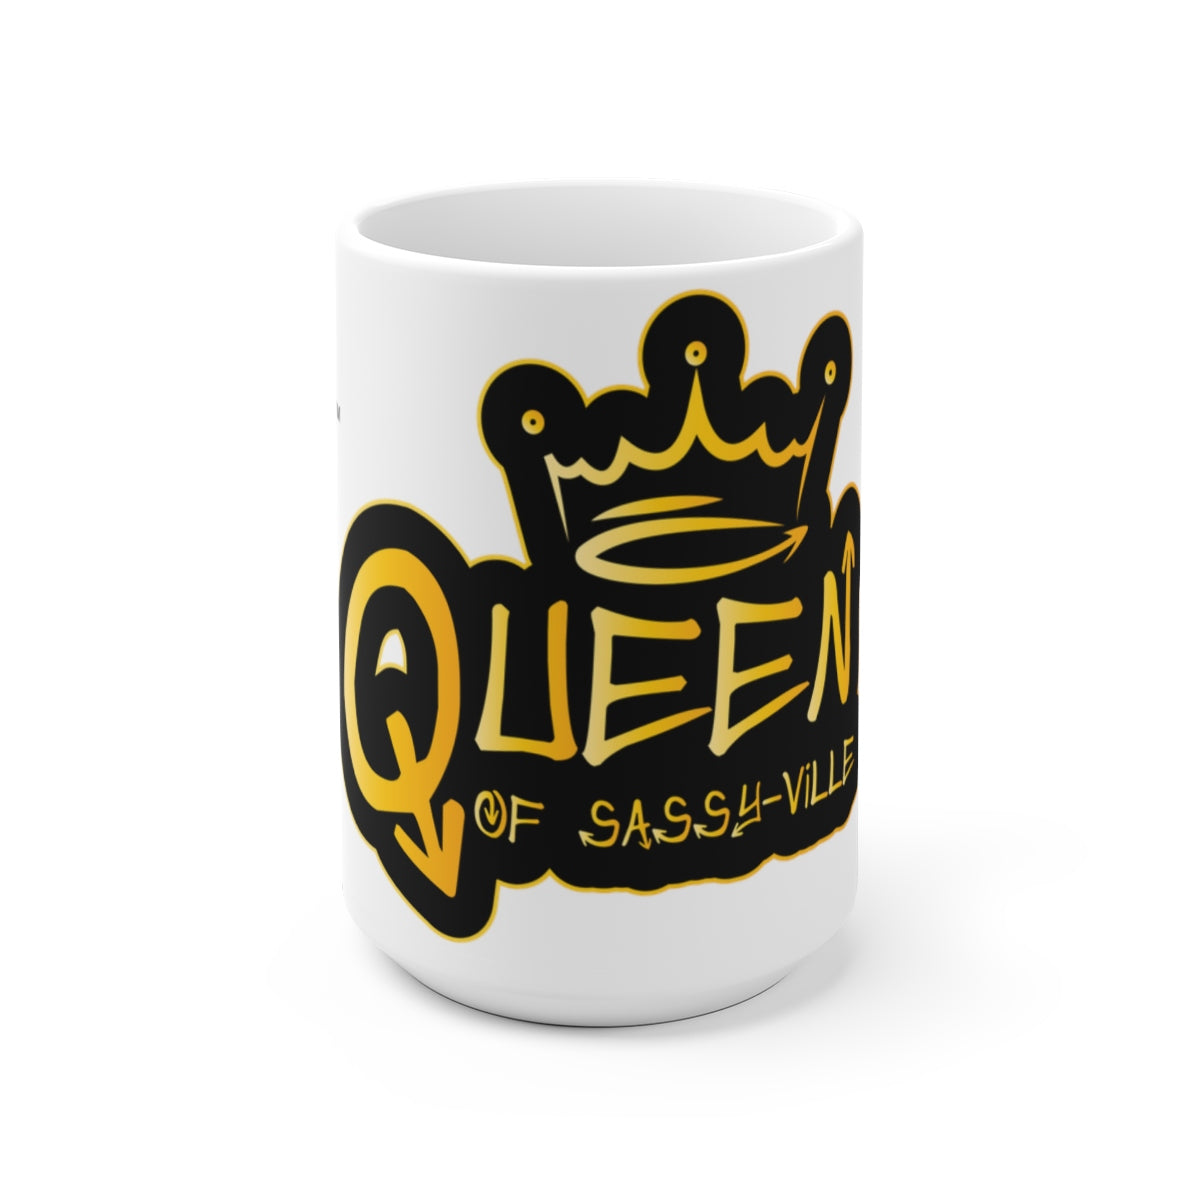 Sassy & Swag Collections - Queen of Sassy-ville White Ceramic Mug